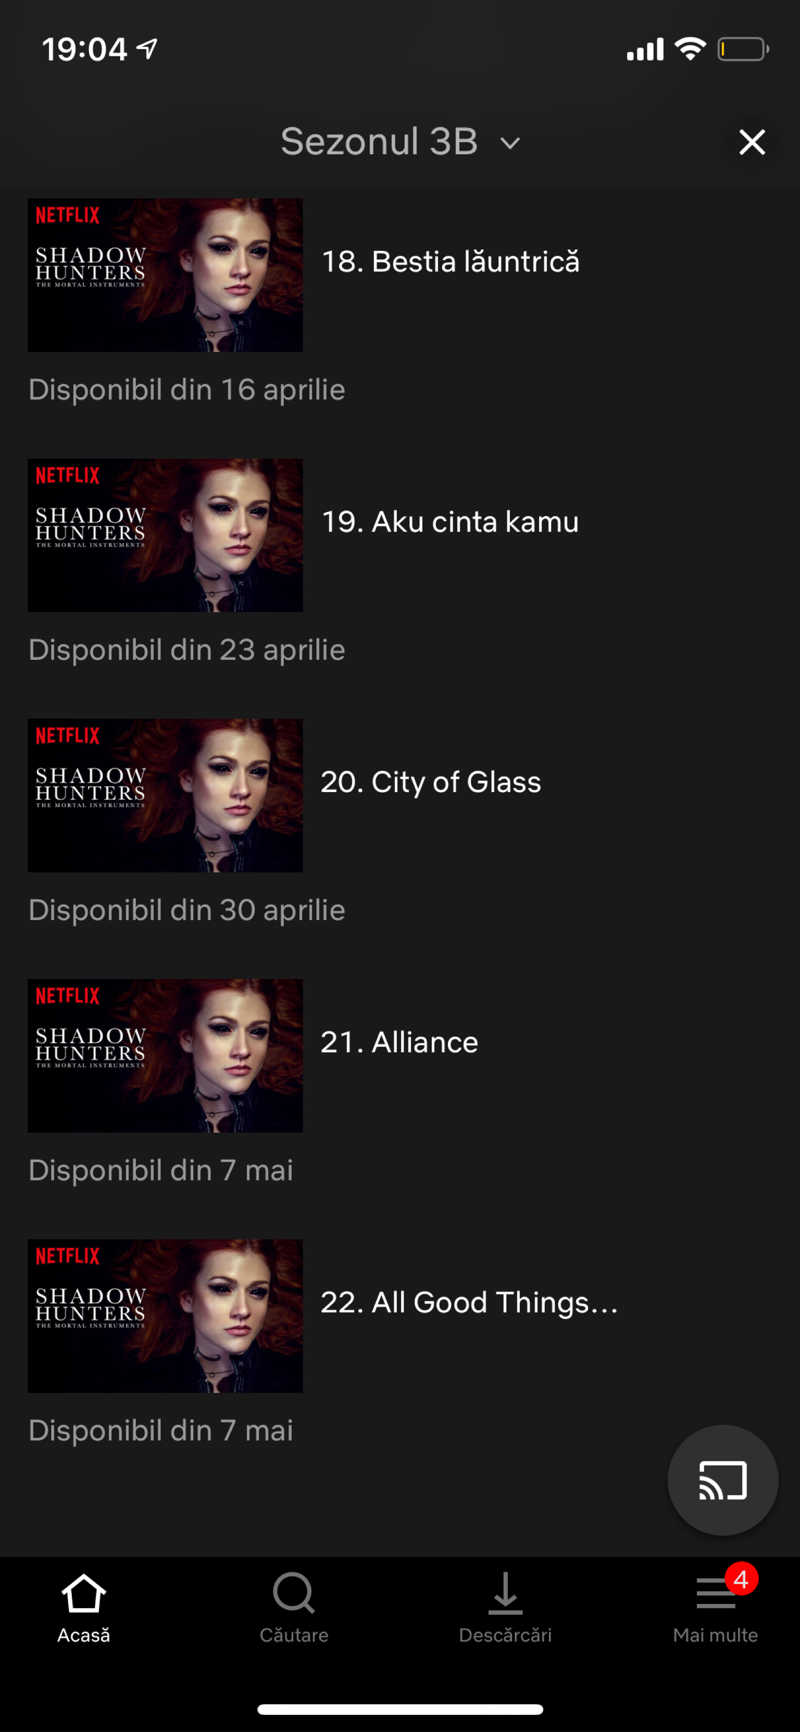 on  netflix there are now 22 eps not 20